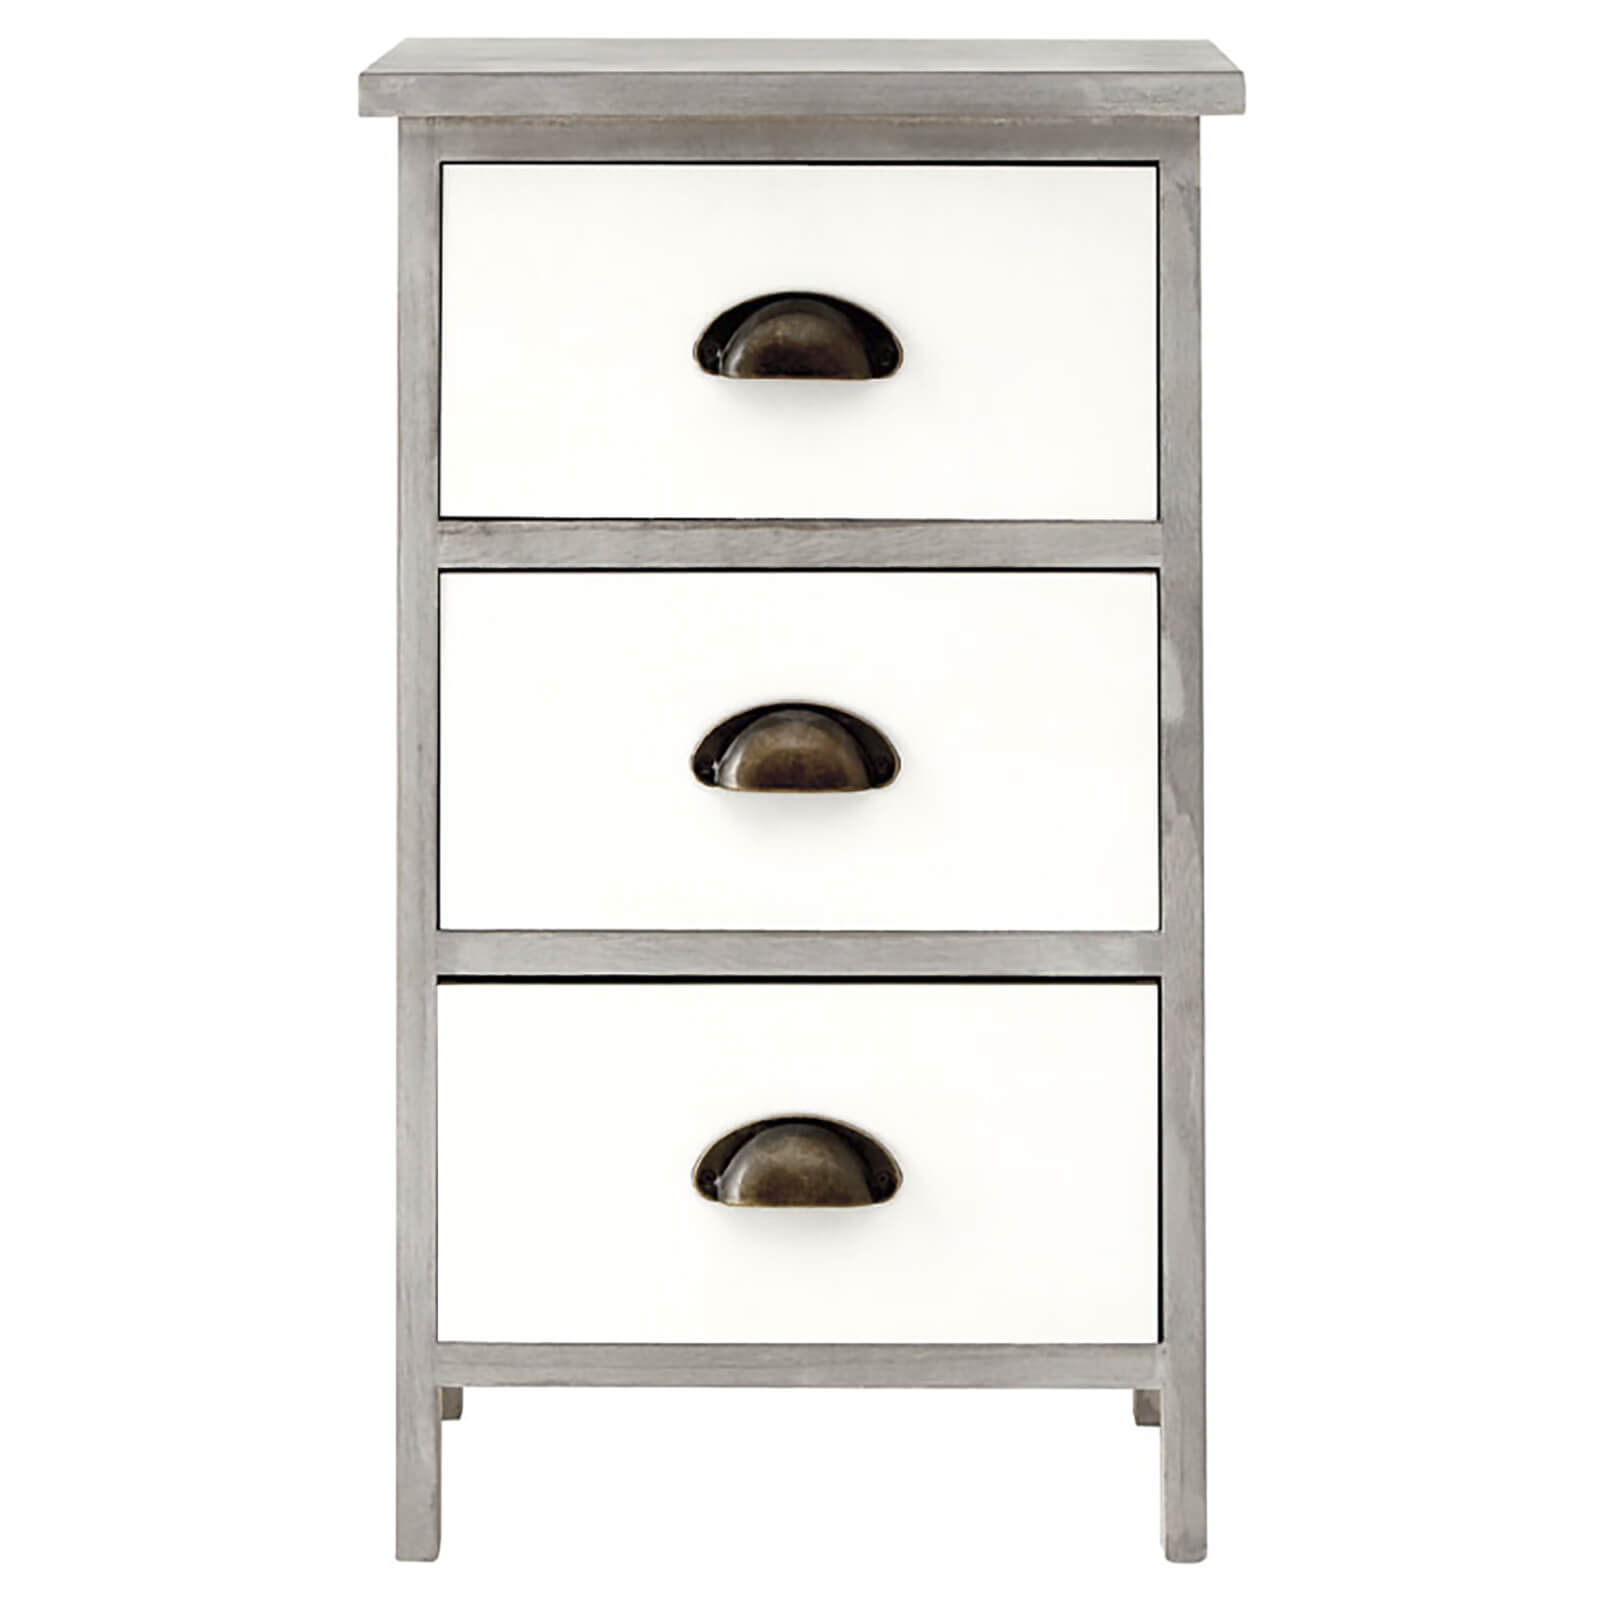 Fifty Five South New Urban Three Drawer Loft Chest - White/Grey Wash